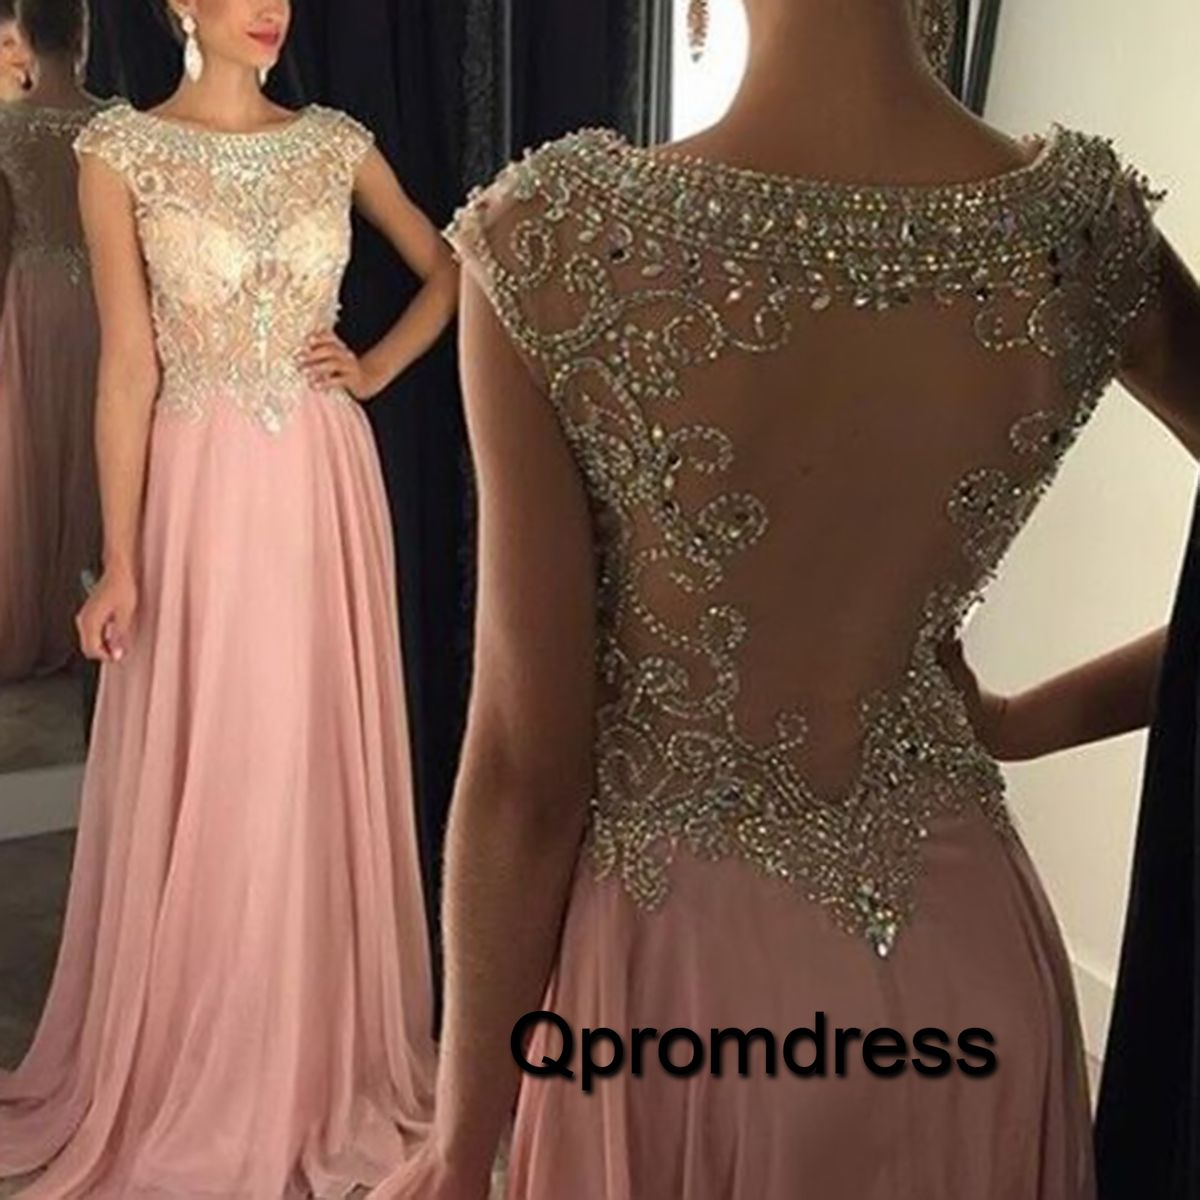 Prom dress apps using cellular